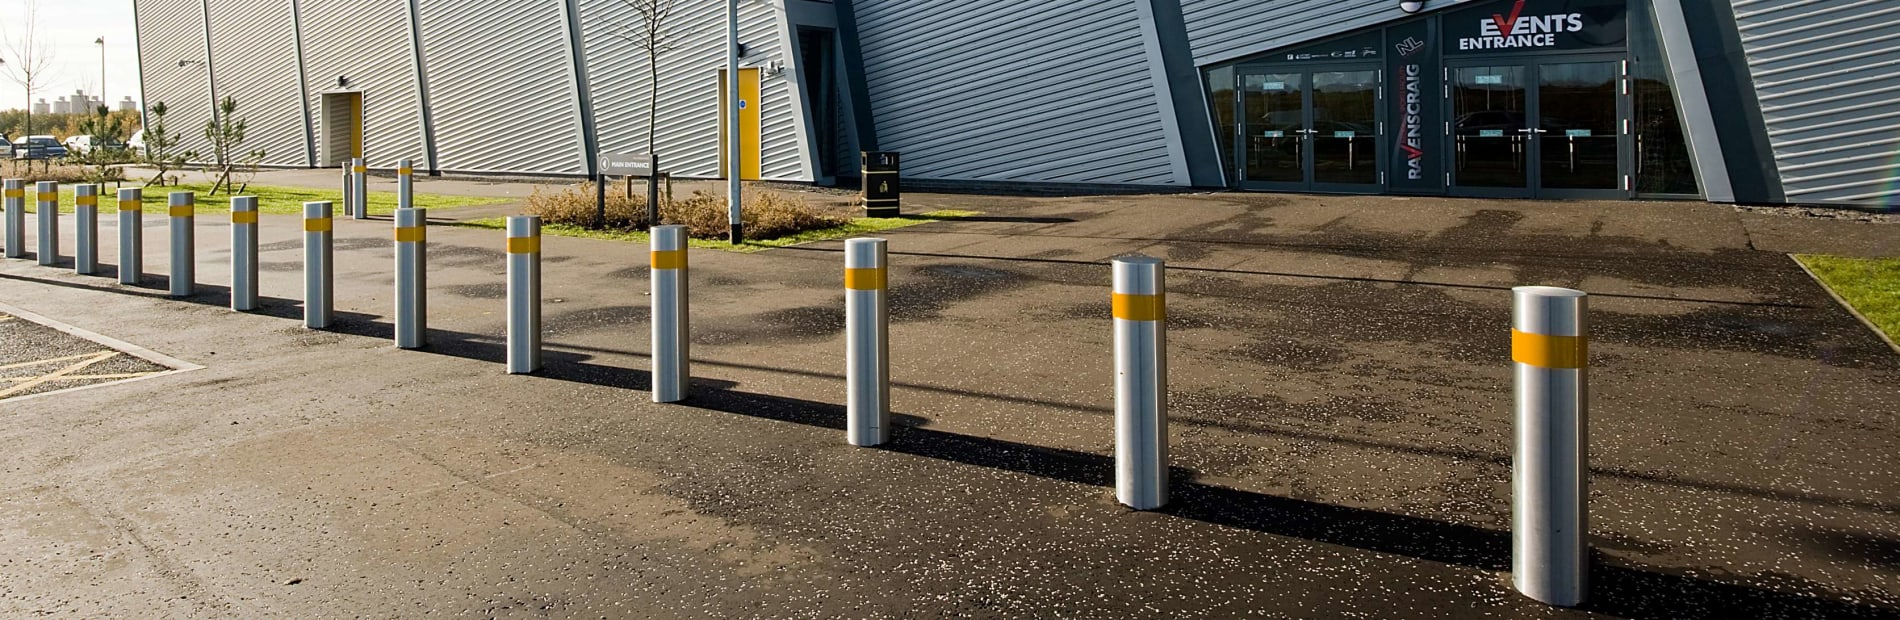 rhinoguard 25/40 bollards with stainless steel sleeves